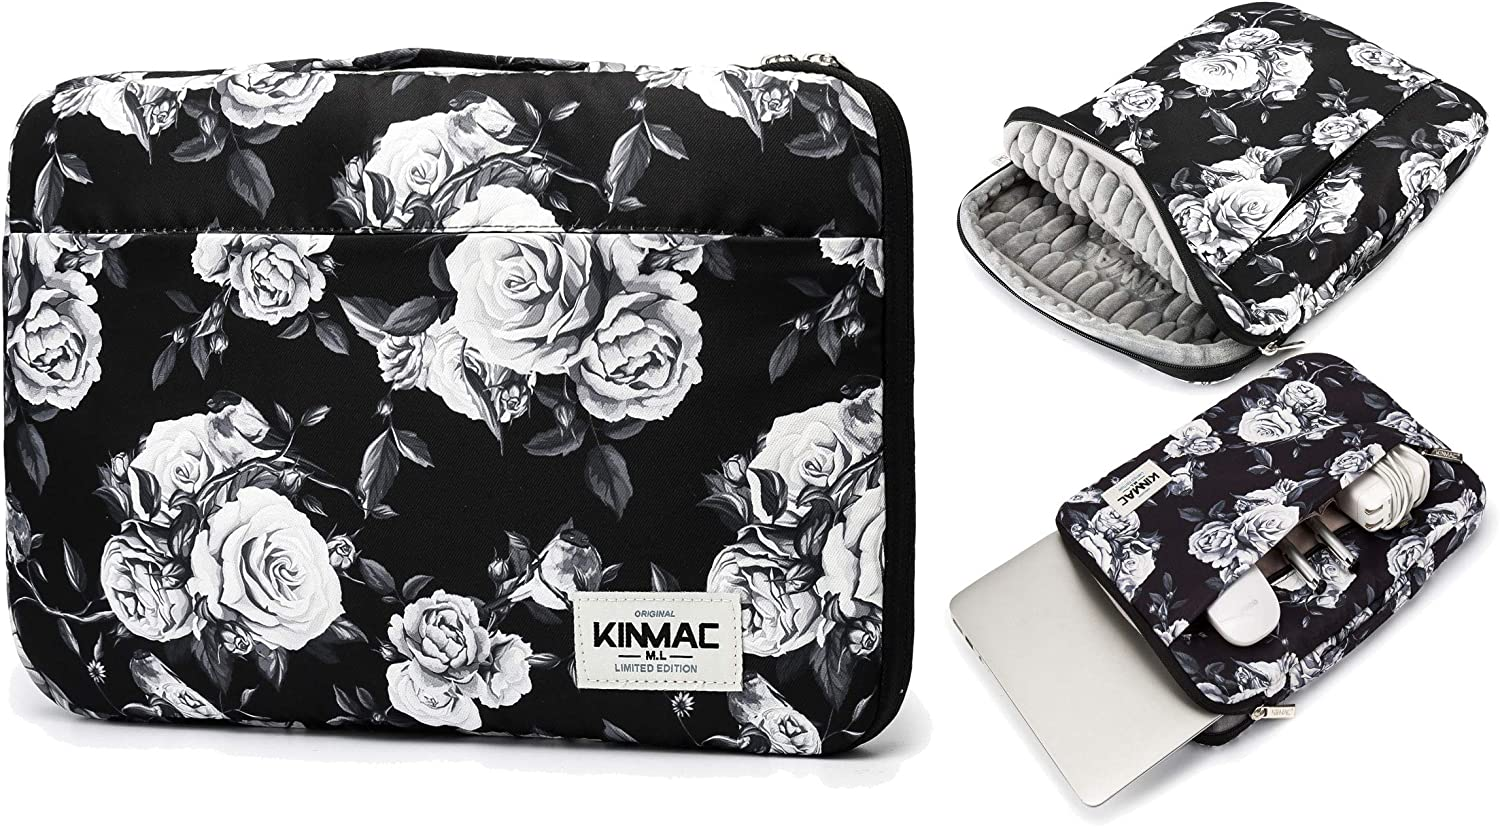 "Kinmac White Rose 360° Protective Water Resistant 12.5 inch-13.3 inch Laptop Case Bag Sleeve with Handle for Surface Pro,MacBook Pro 13"",MacBook 12"",New MacBook Air 13"" Retina and iPad pro 12.9"